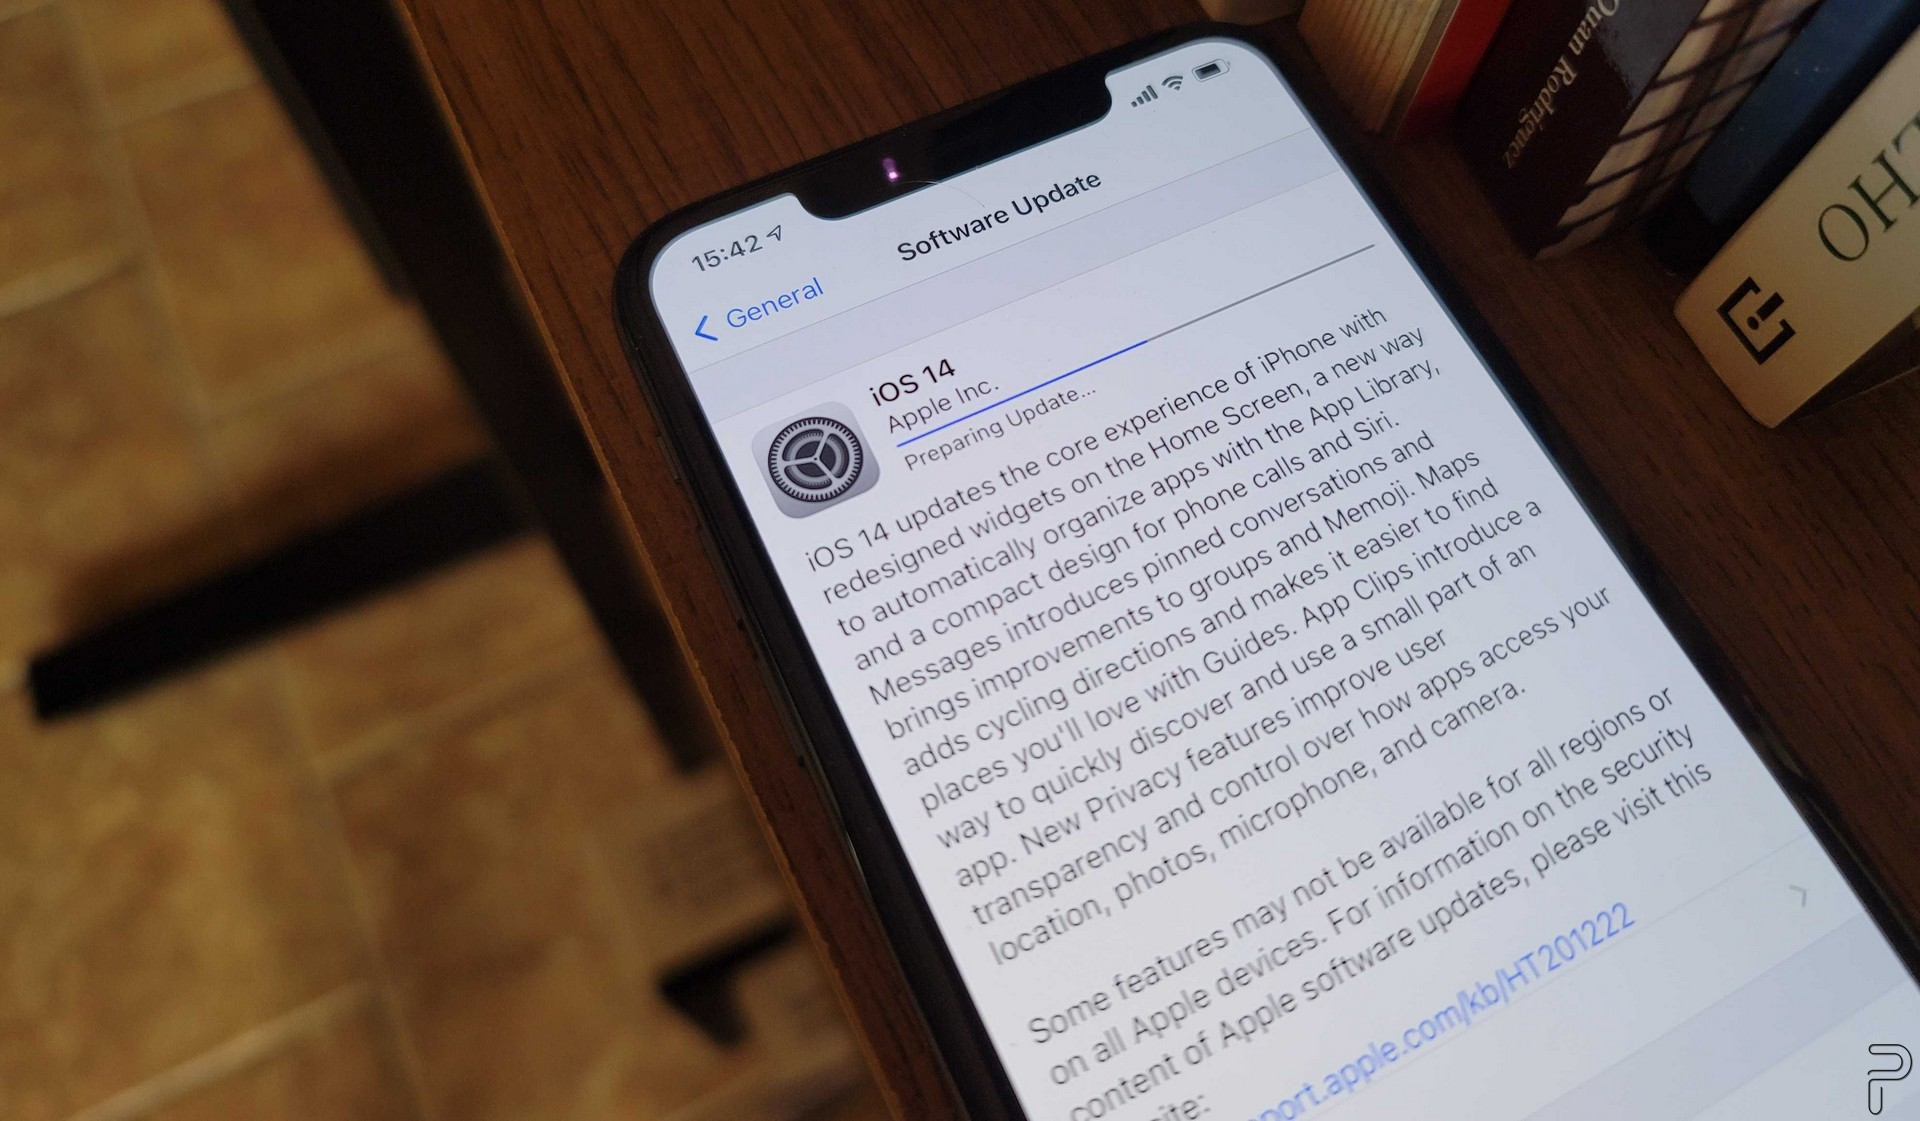 Apple rolls out iOS 14 and iPadOS 14 via the stable channel